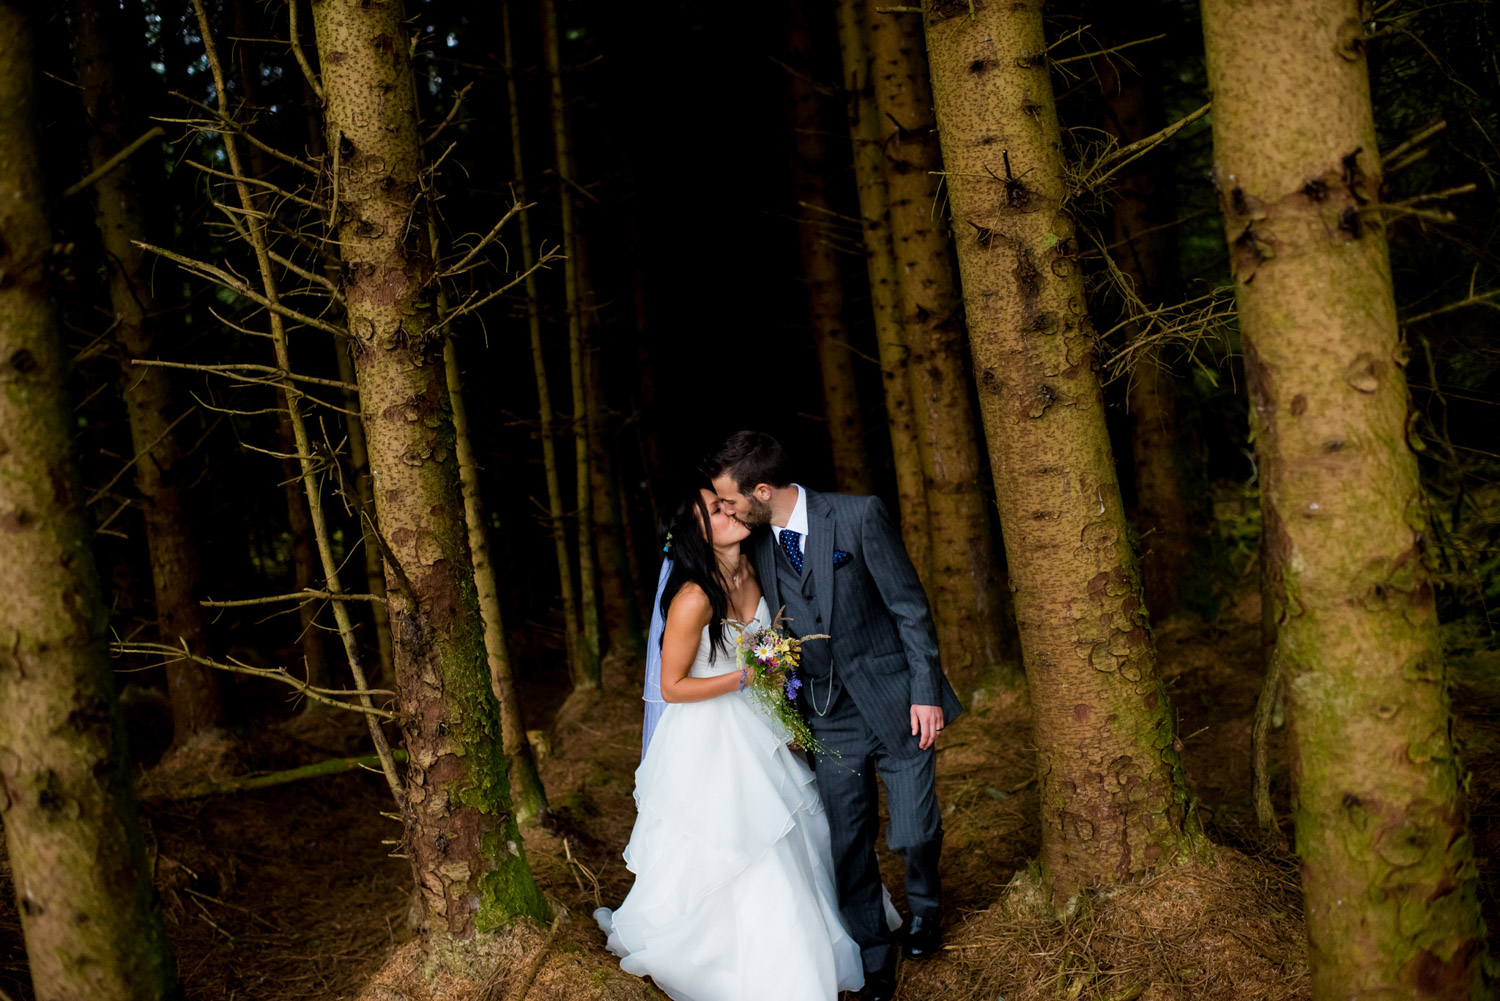 Jasmin & Chris-323.jpg